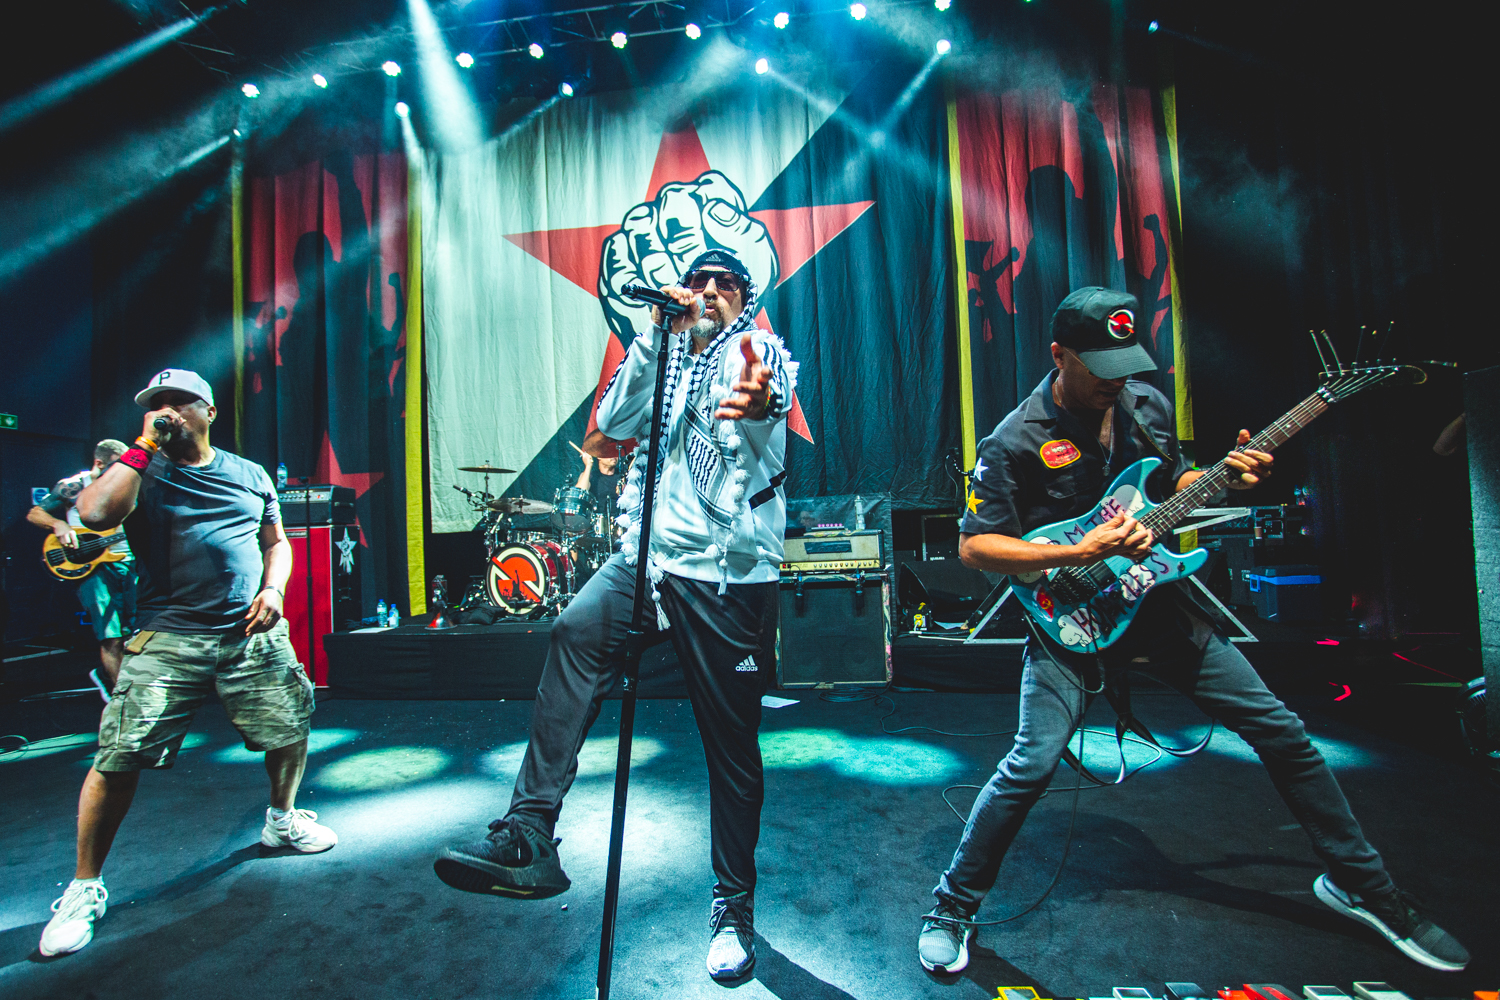 Live Review: Prophets Of Rage at O2 Shepherd's Bush Empire, London, 12/08/2019